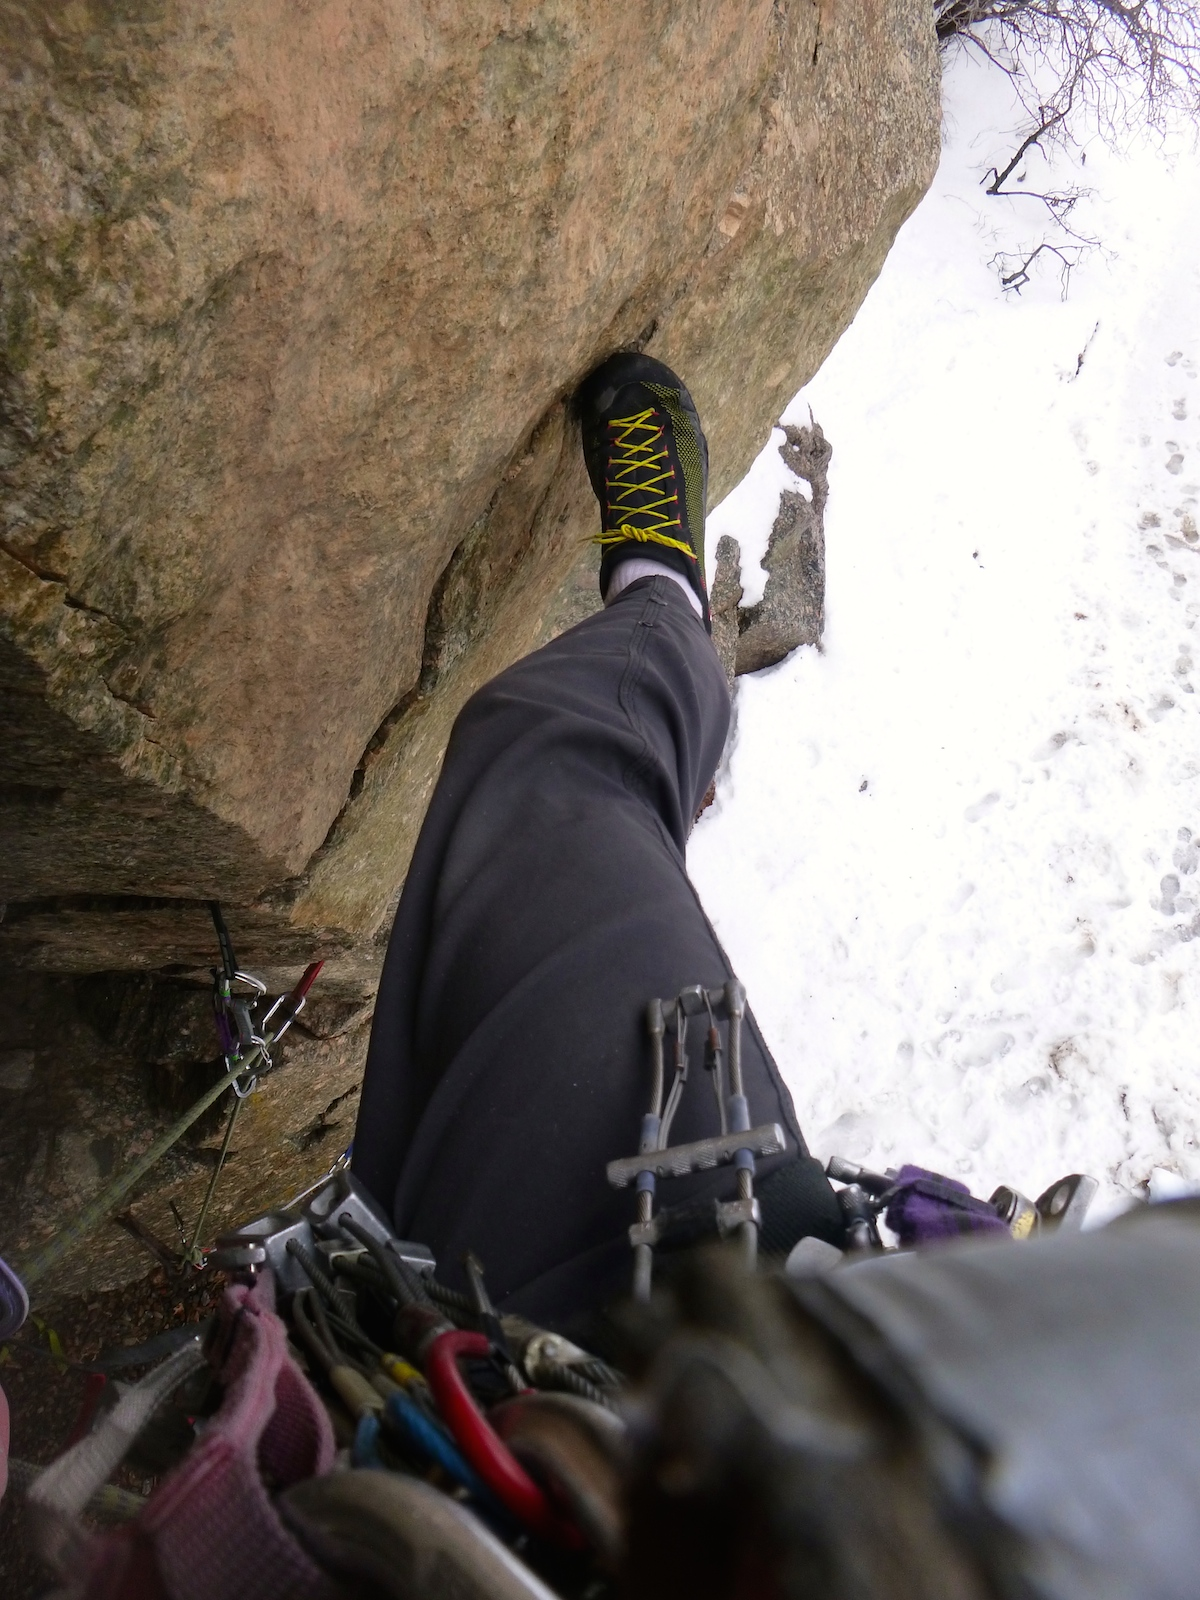 The La Sportiva TX2 shoes performed well on this wet, overhanging pitch in the Glenwood Canyon, Colorado, which entailed aid and free climbing (5.6 C1+). [Photo] Derek Franz